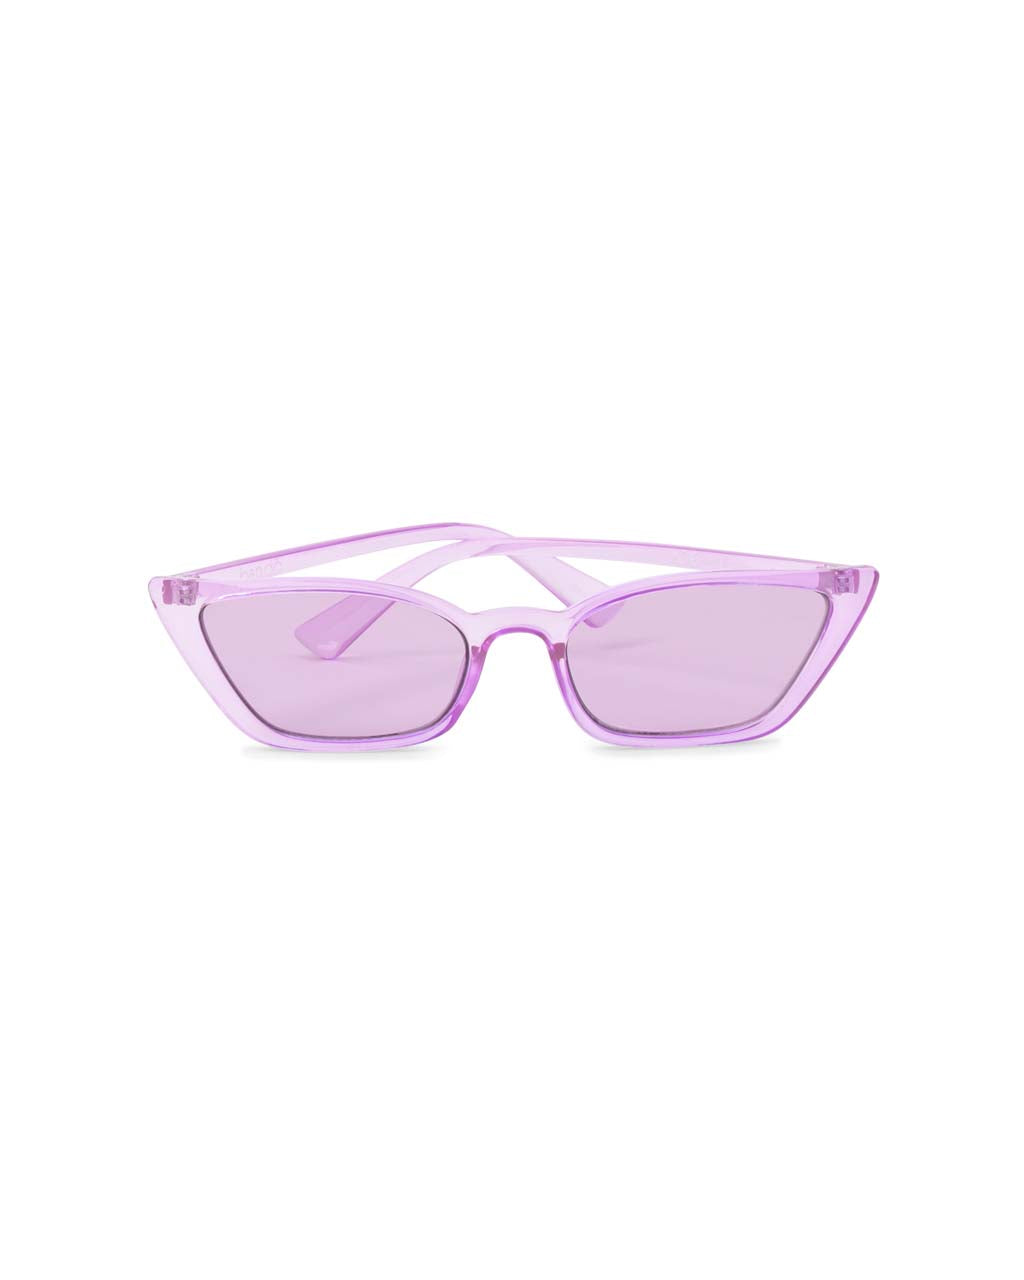 Transparent lilac cat-eye sunglasses with lilac lenses